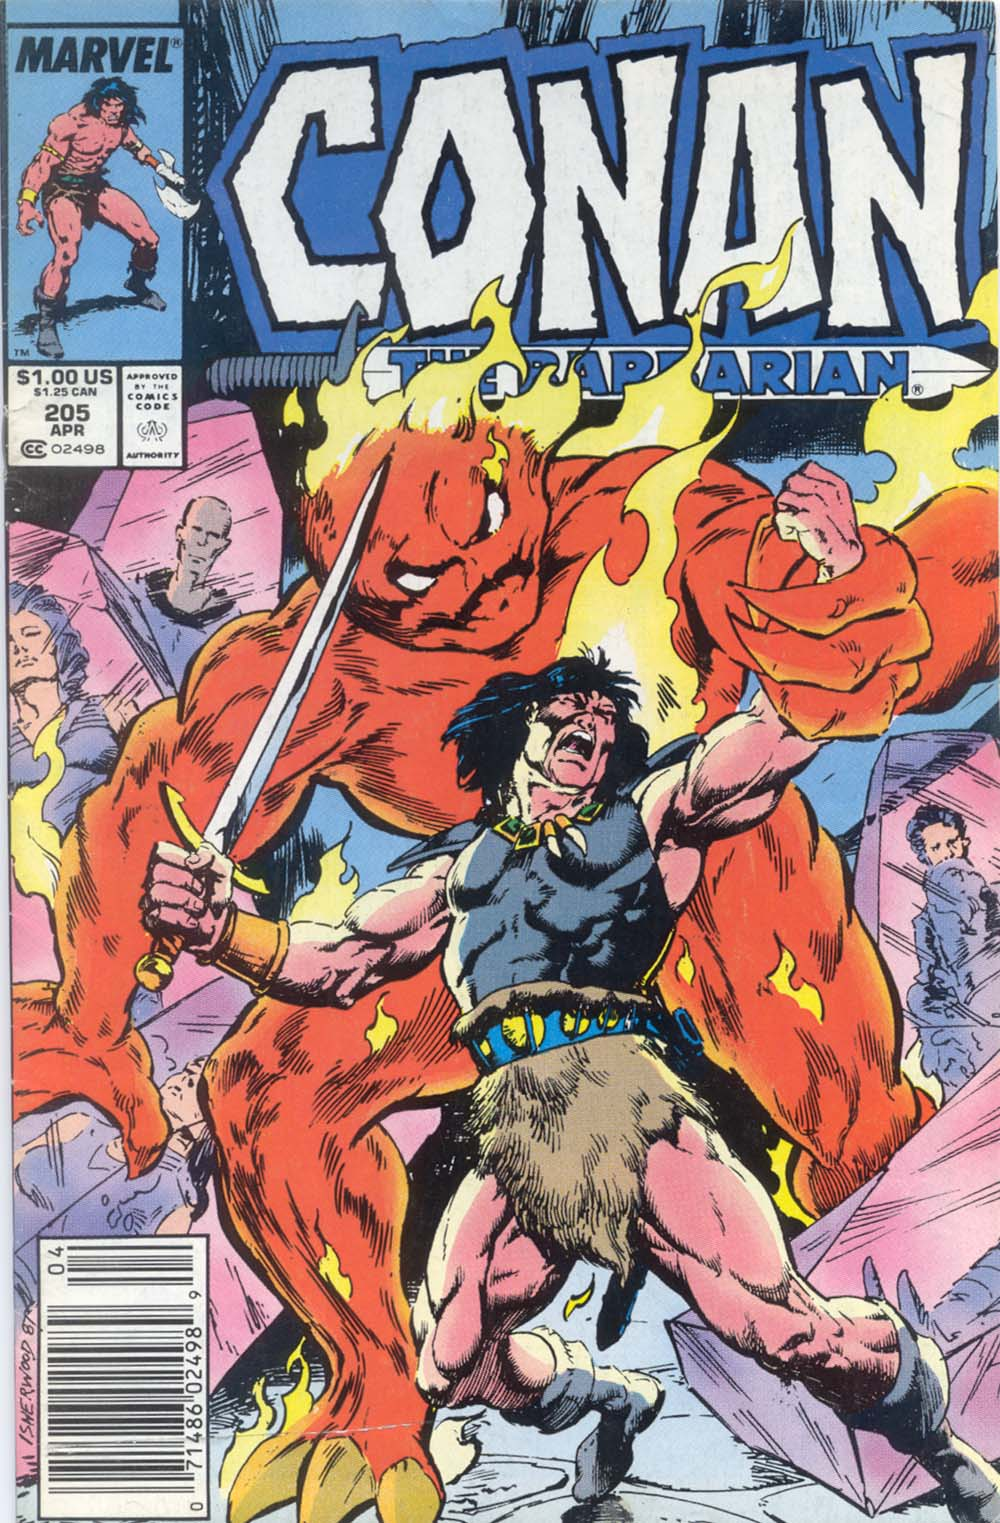 Conan the Barbarian (1970) Issue #205 #217 - English 1